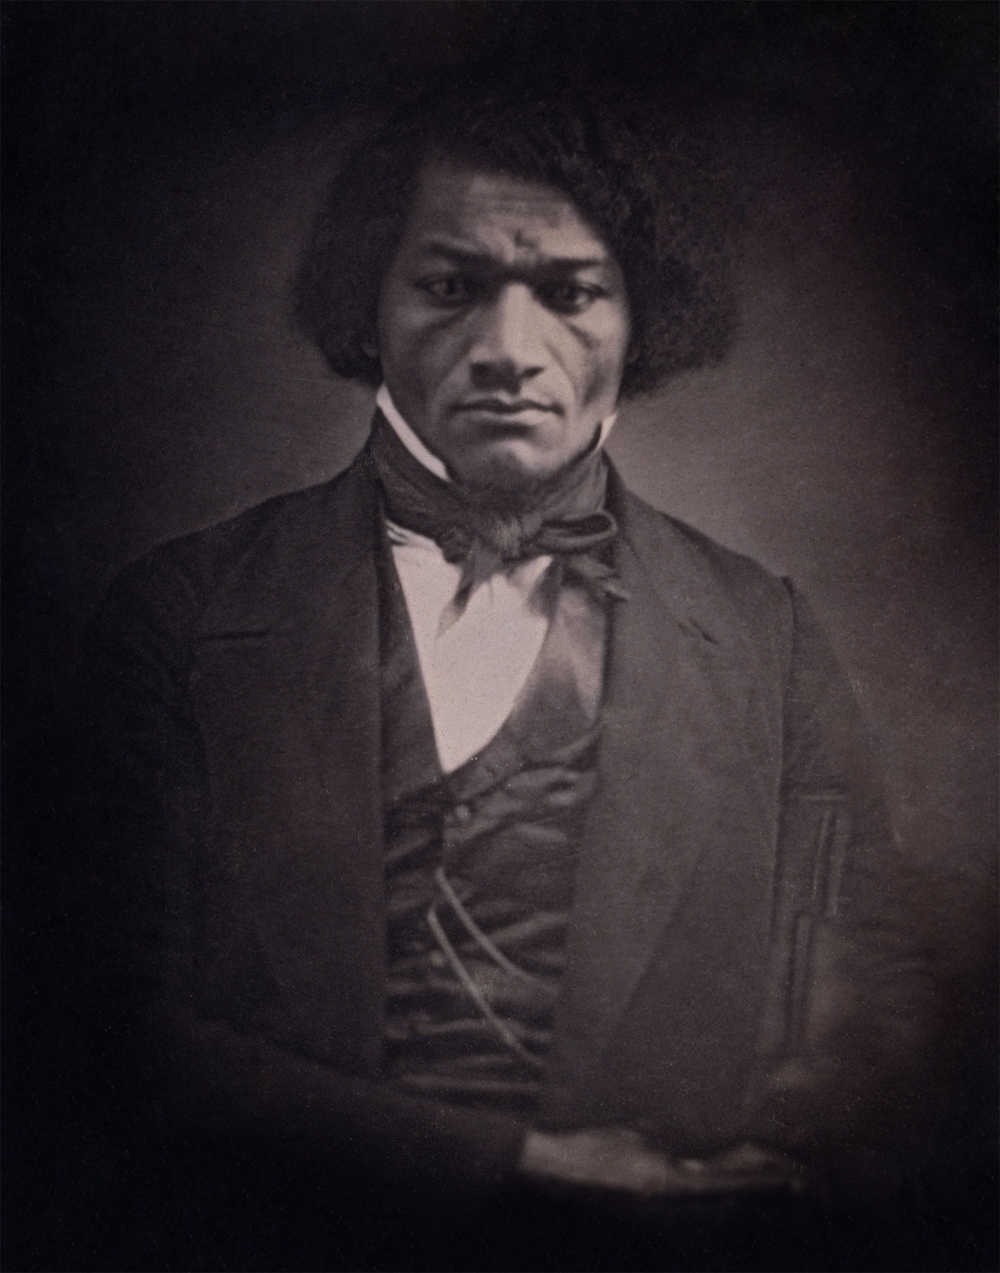 Frederick Douglass was perhaps the most famous African American abolitionist, fighting tirelessly not only for the end of slavery but for equal rights of all American citizens. This copy of a daguerreotype shows him as a young man, around the age of 29 and soon after his self-emancipation. Print, c. 1850 after c. 1847 daguerreotype. Wikimedia, http://commons.wikimedia.org/wiki/File:Unidentified_Artist_-_Frederick_Douglass_-_Google_Art_Project-restore.png.